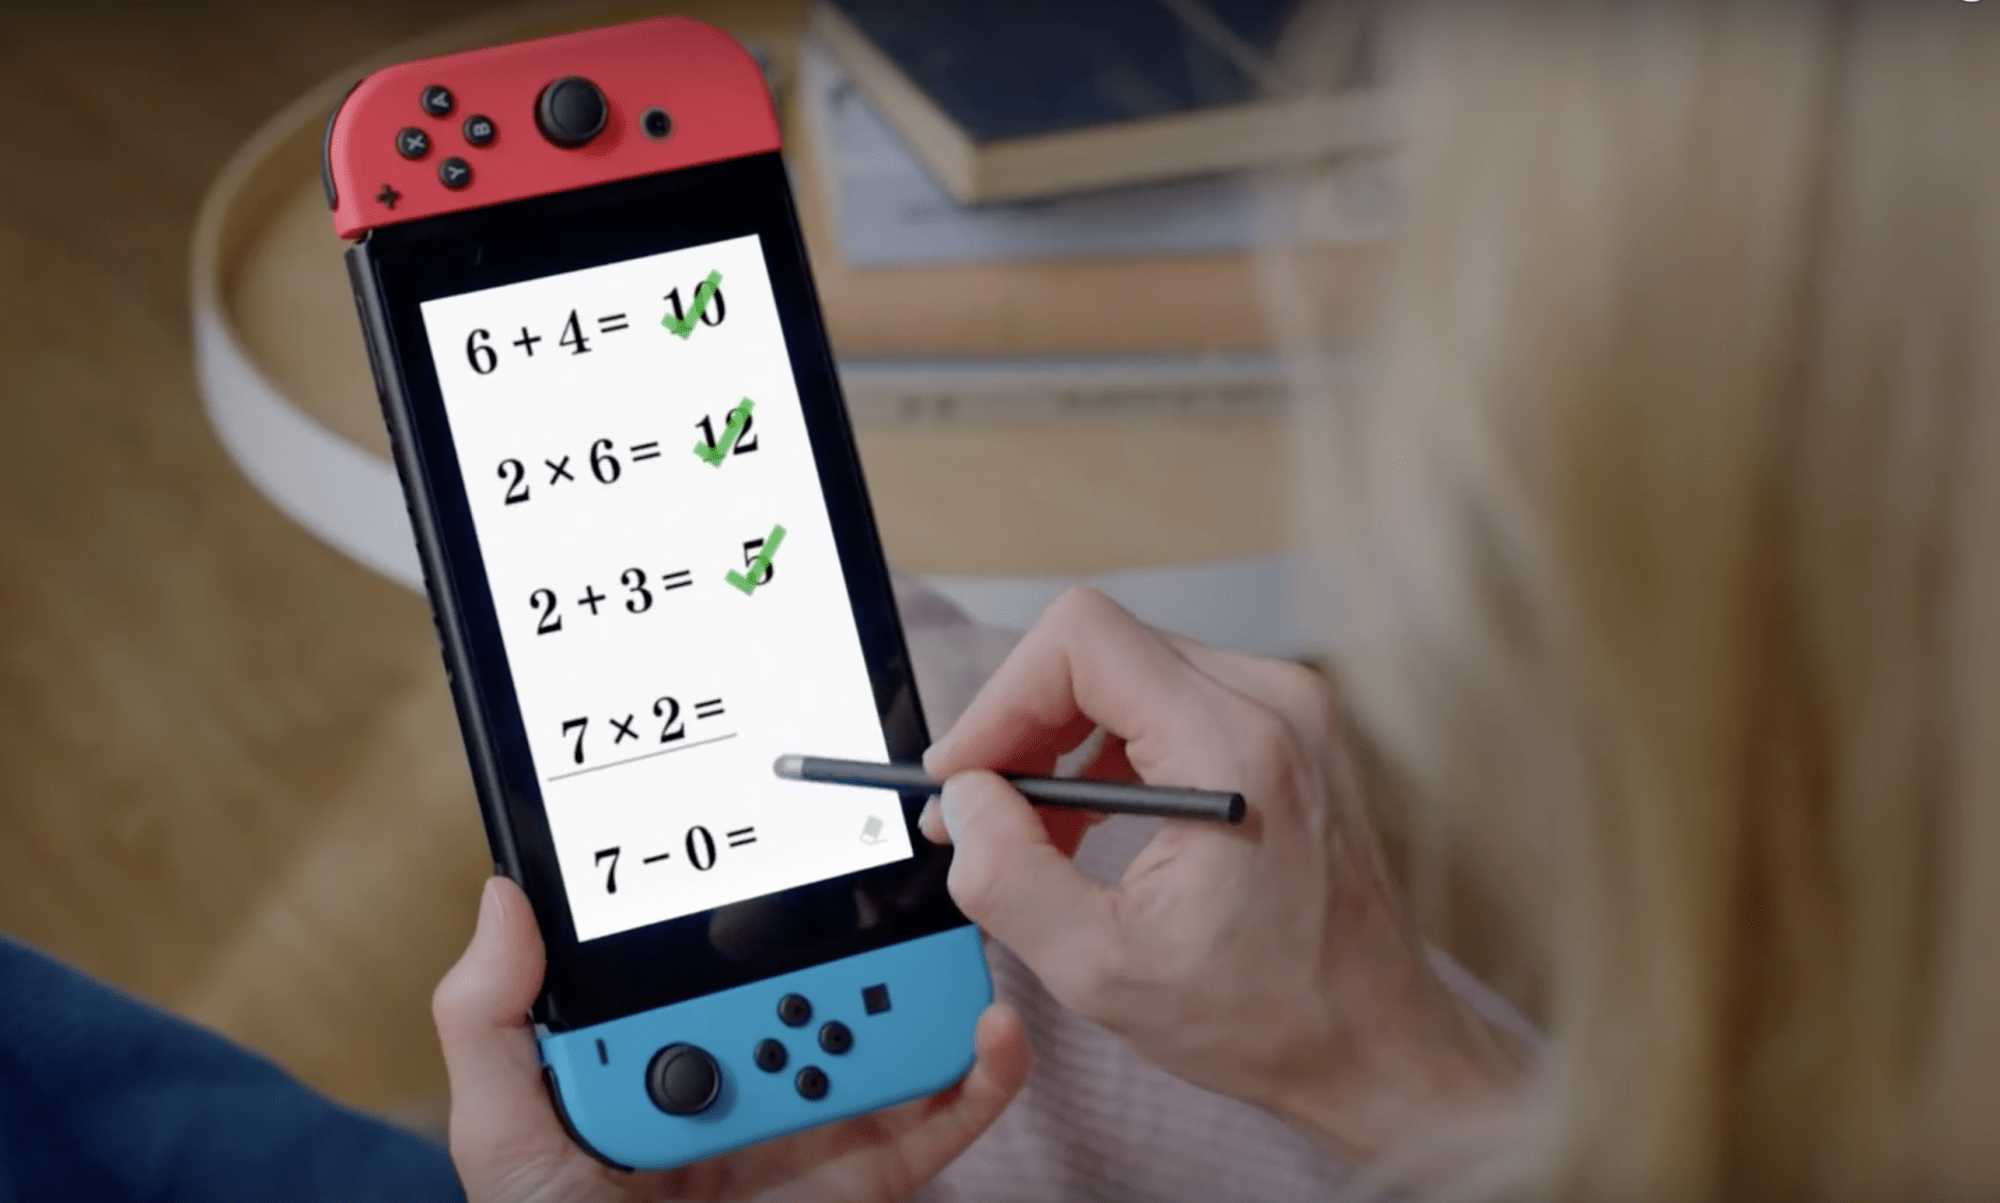 Nintendo's reimagined 'Brain Training' for Switch is coming to Europe